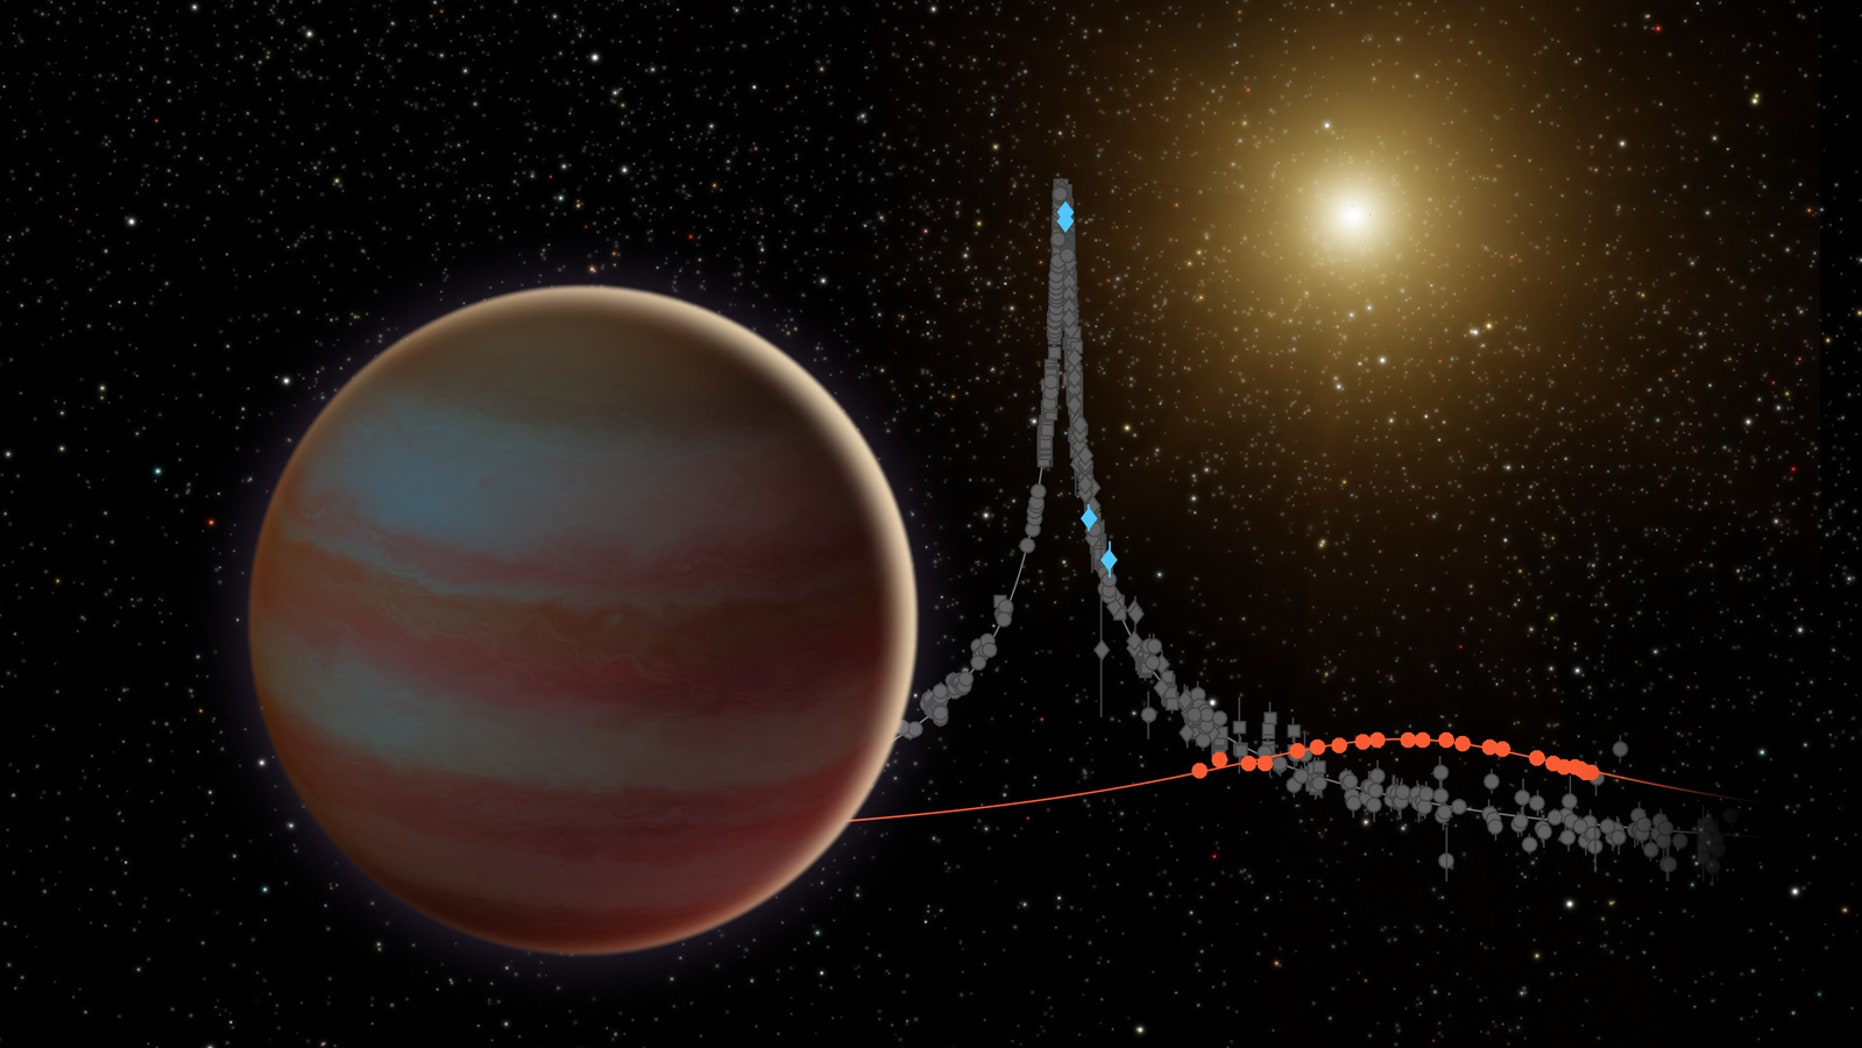 A 2016 NASA illustration depicts a different brown dwarf, oribiting further away from its host star.